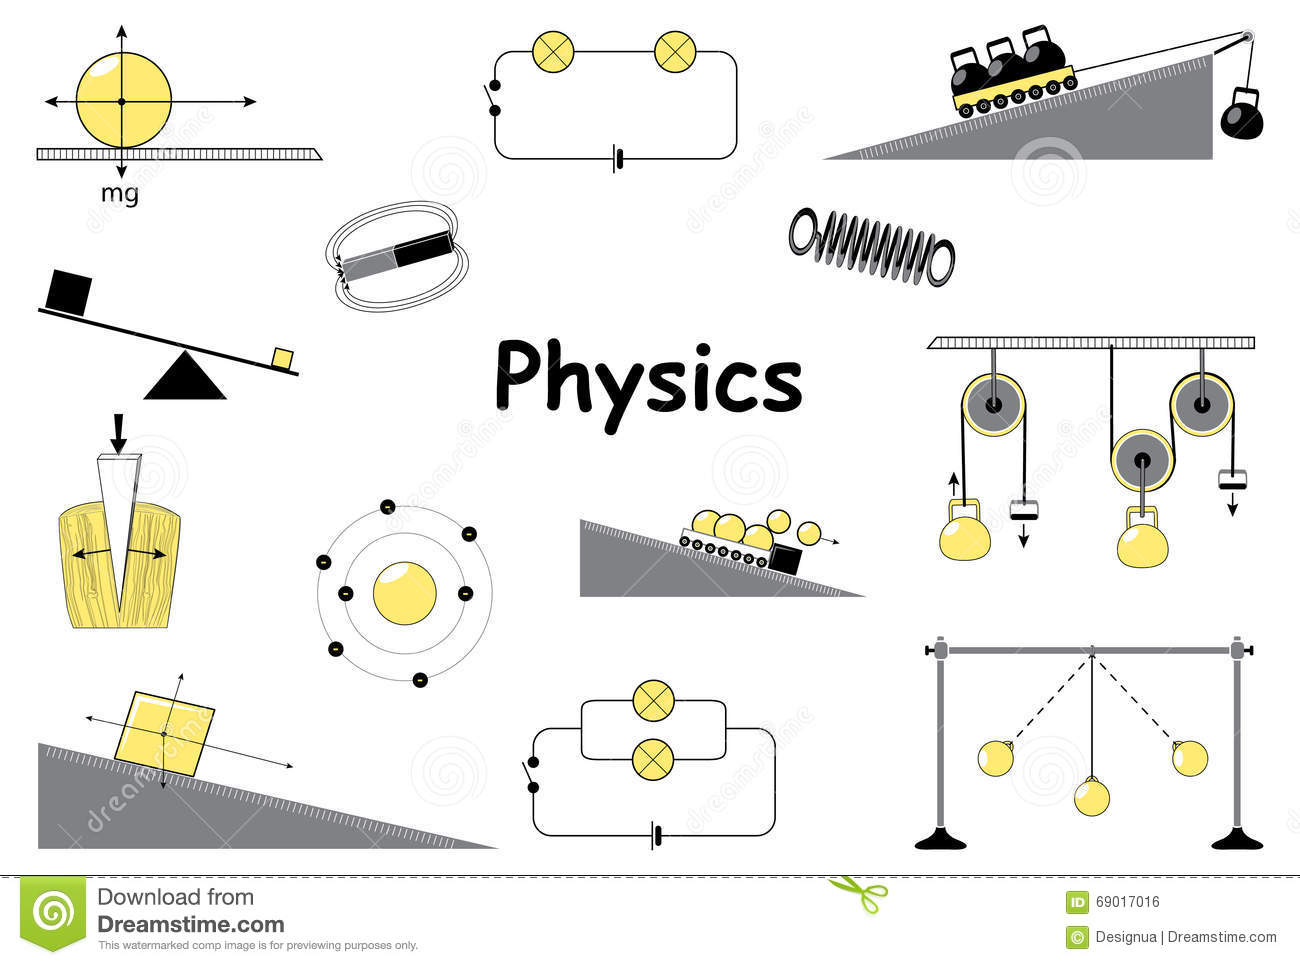 hight resolution of experiments equipment tools magnet atom pendulum newton s laws and the simplest mechanisms of archimedes